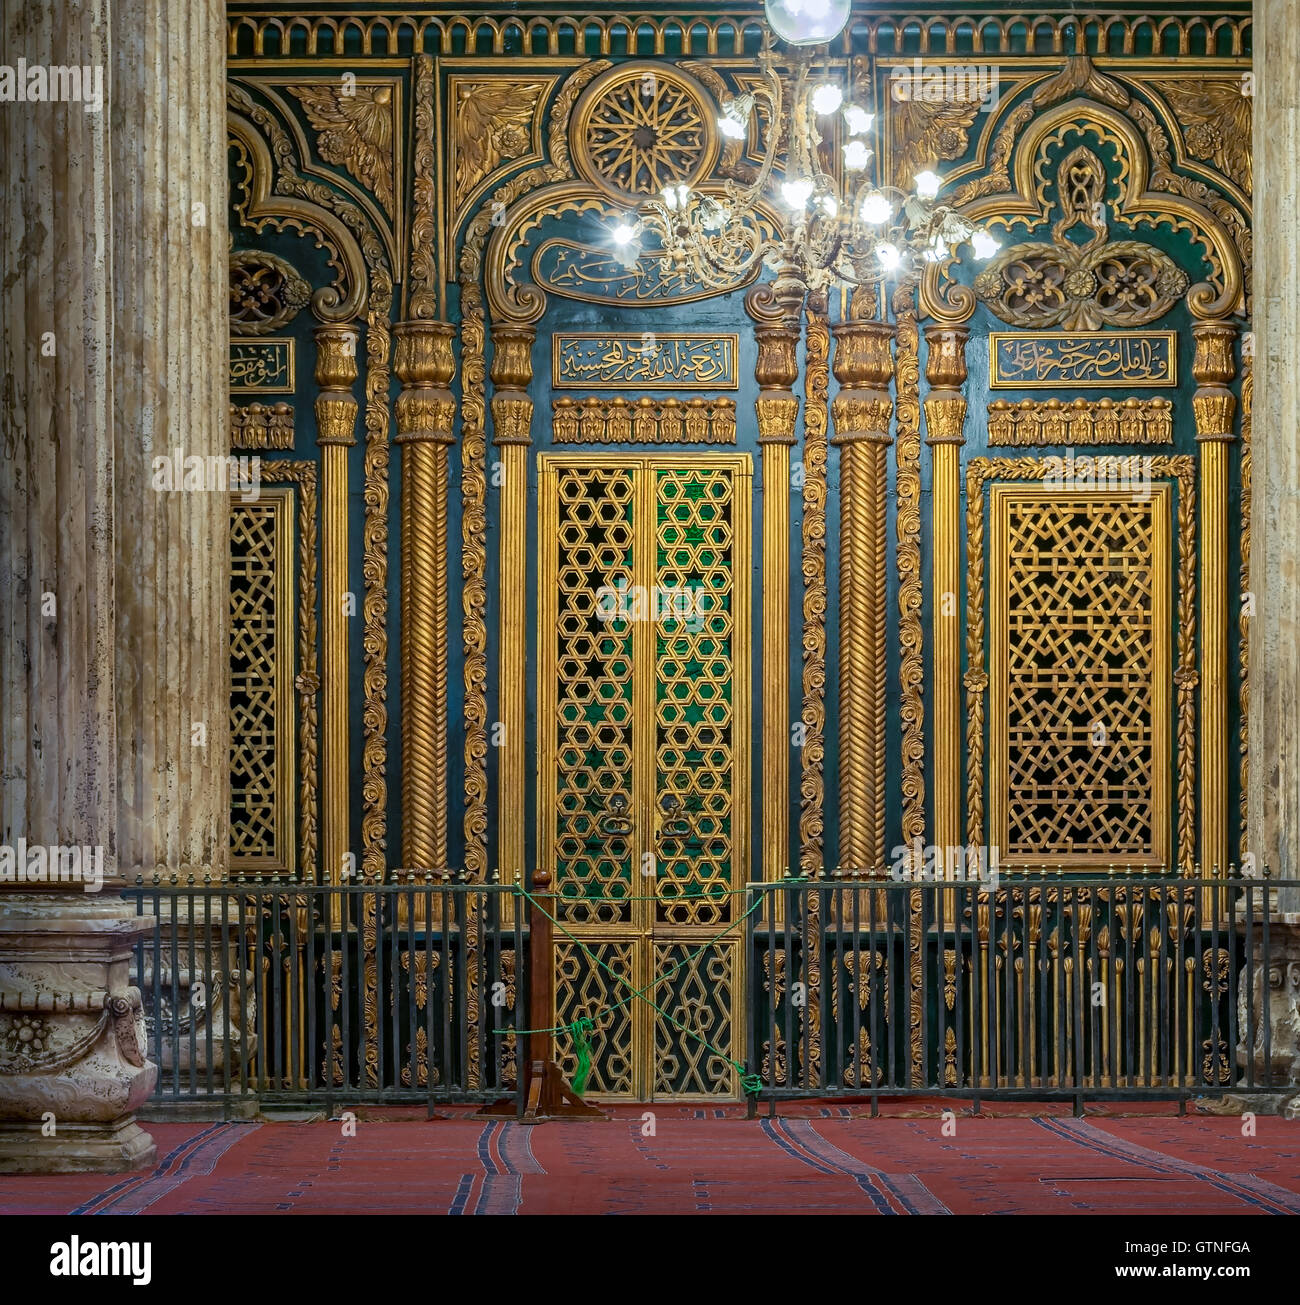 Cairo, Egypt - January 10, 2016: Tomb (Shrine) of Muhammad Ali Pasha with golden decorations, Alabaster Mosque, - Stock Image